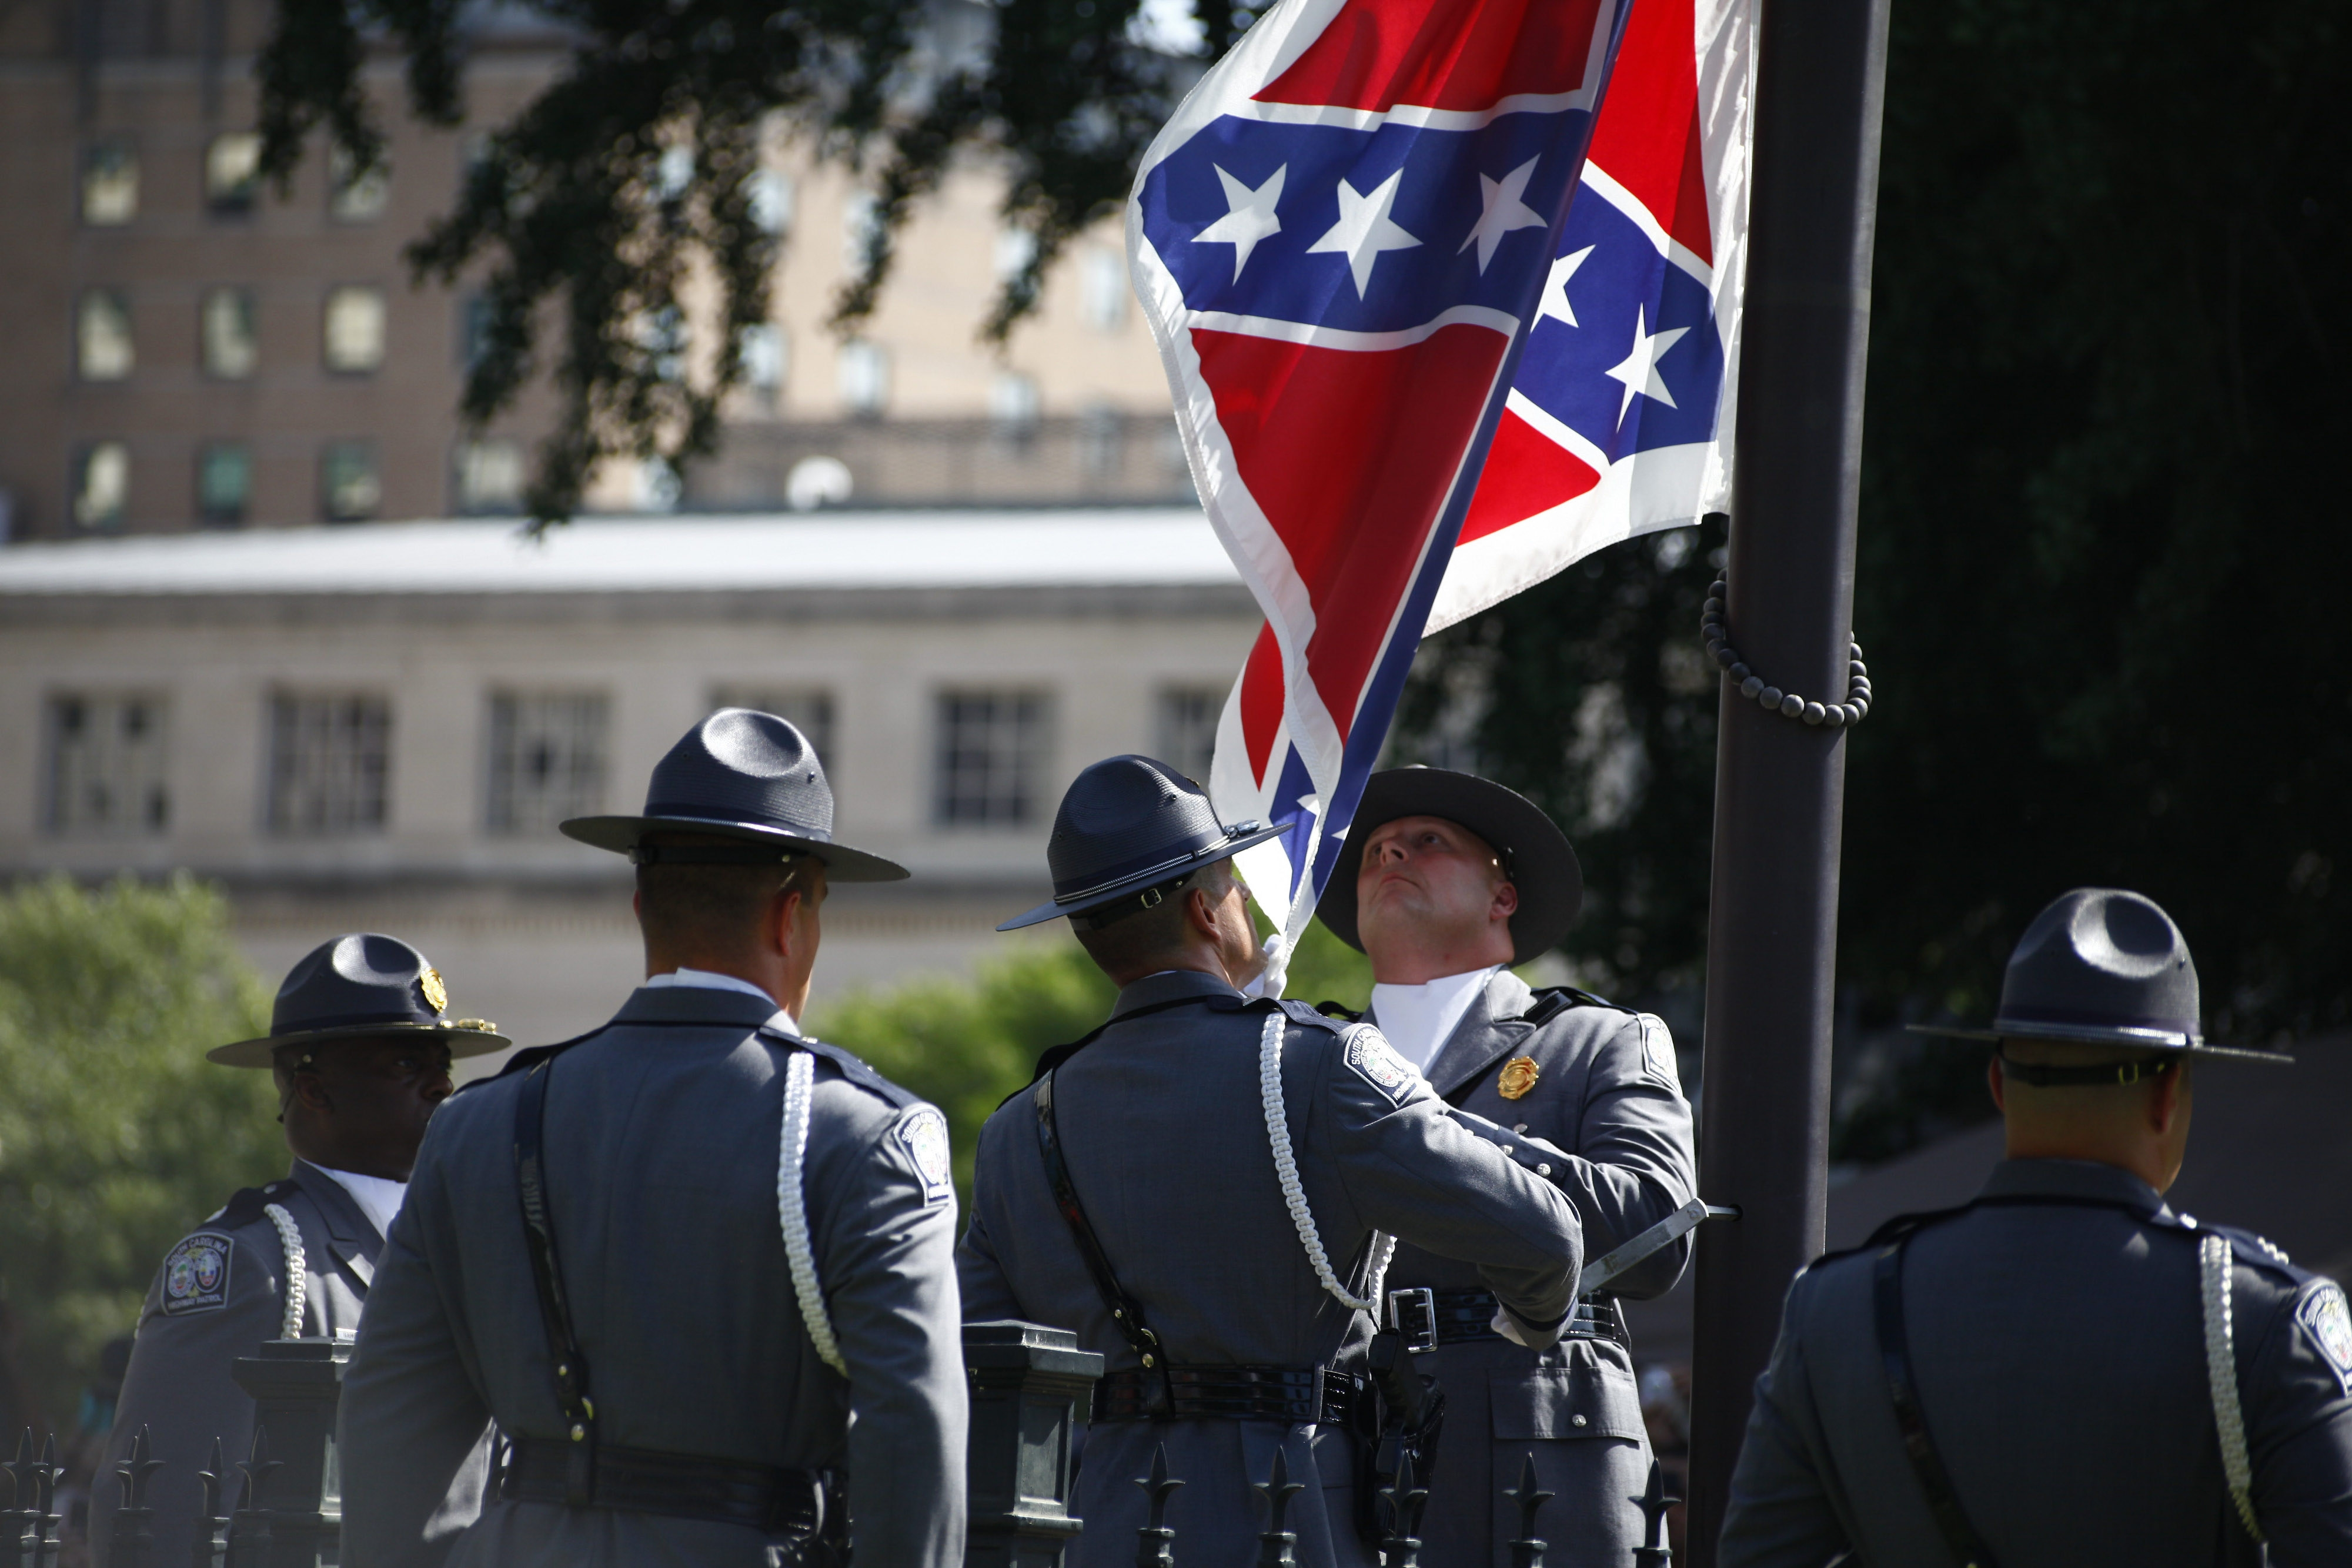 Members of the South Carolina State Police remove the Confederate battle flag from the grounds of the Statehouse in Columbia, S.C., Friday. (New York Times photo)